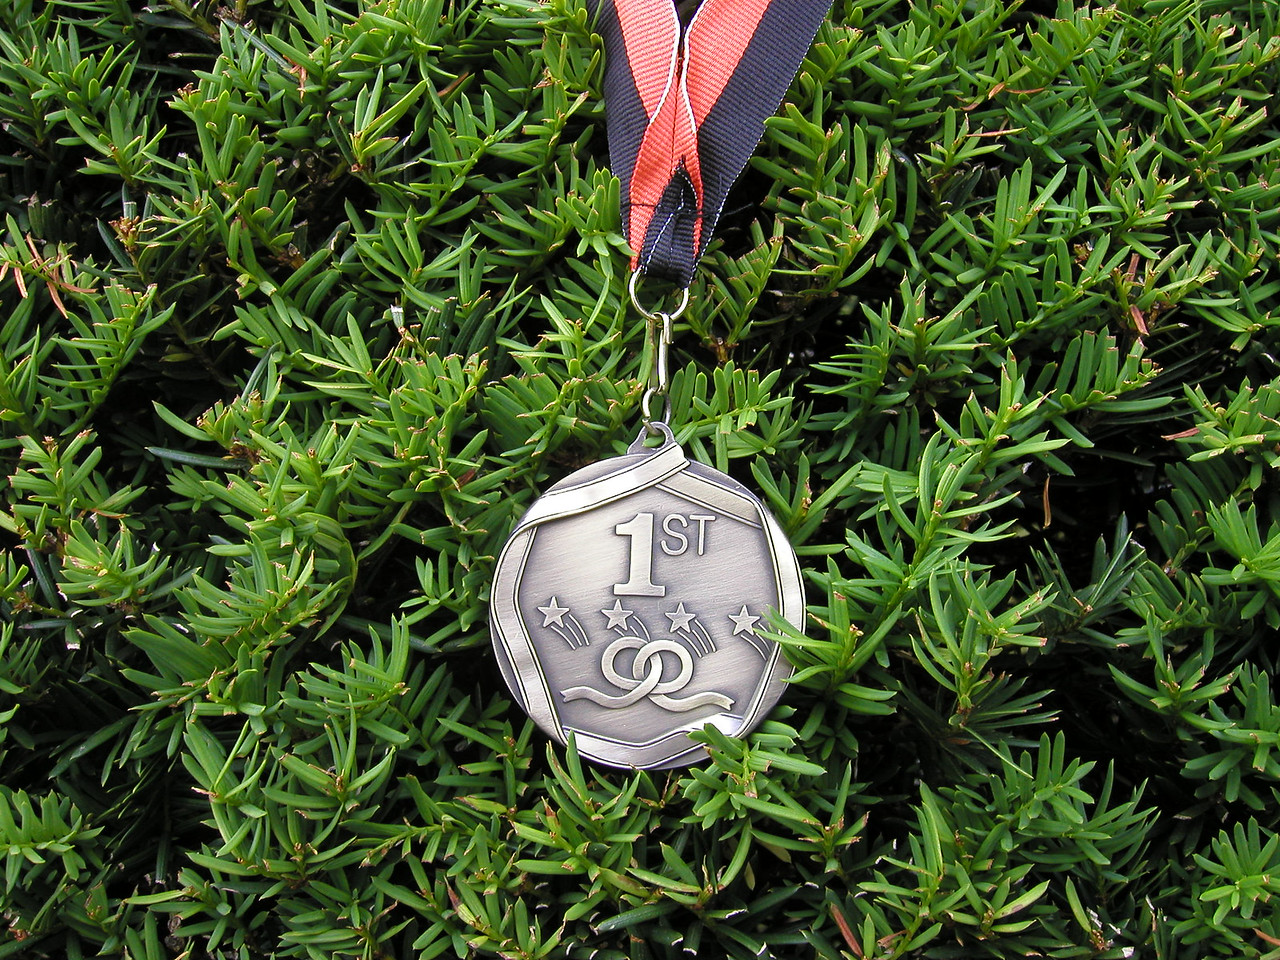 The medals were nice, here's one side & .......